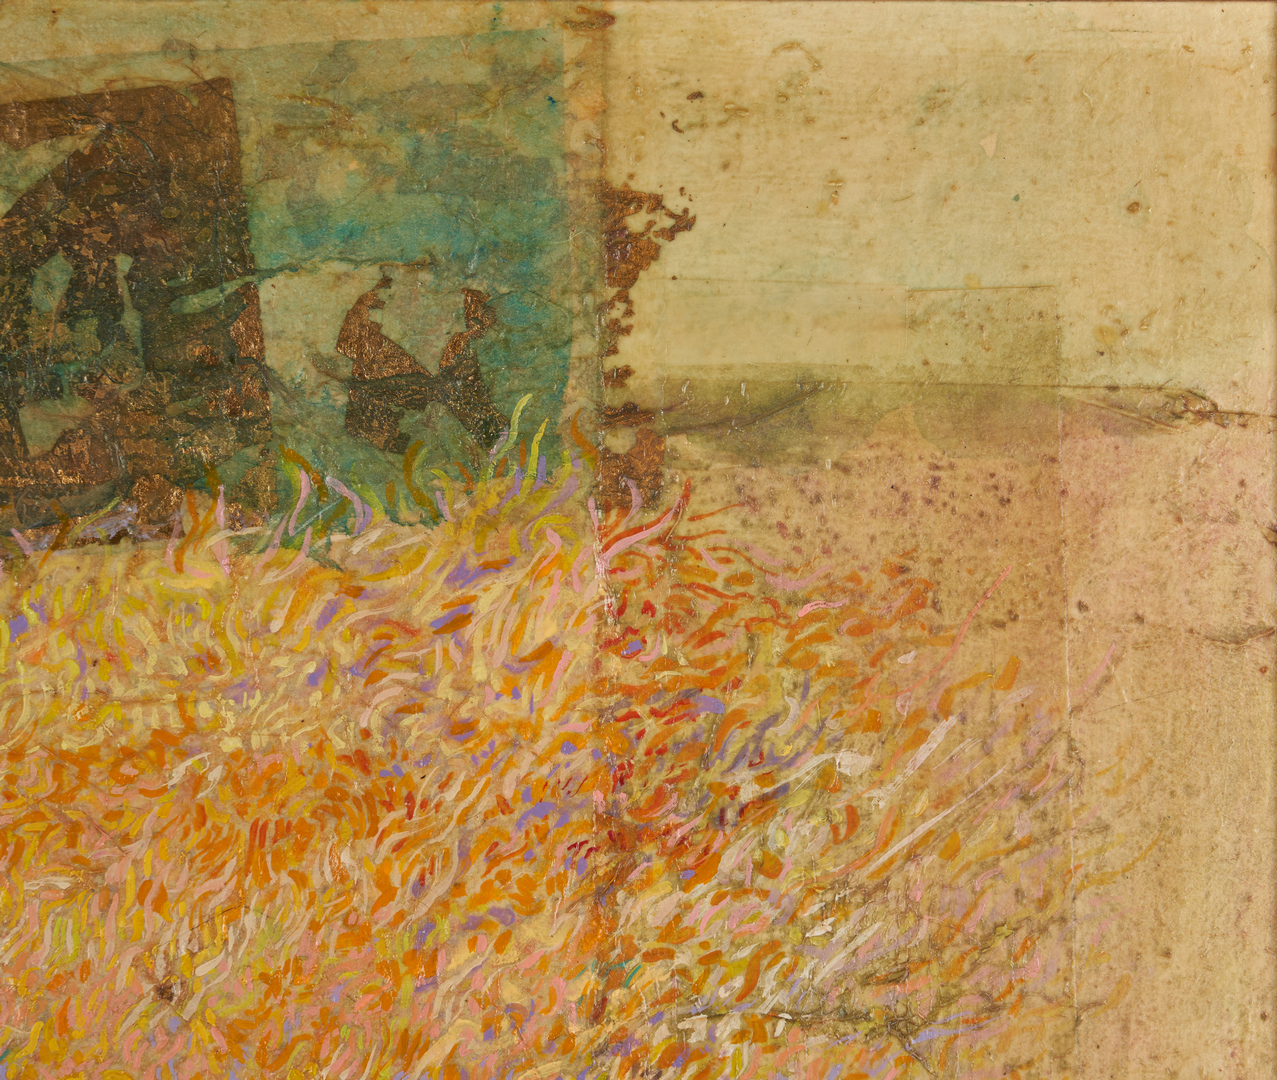 Lot 504: Mixed Media Abstract Painting, signed